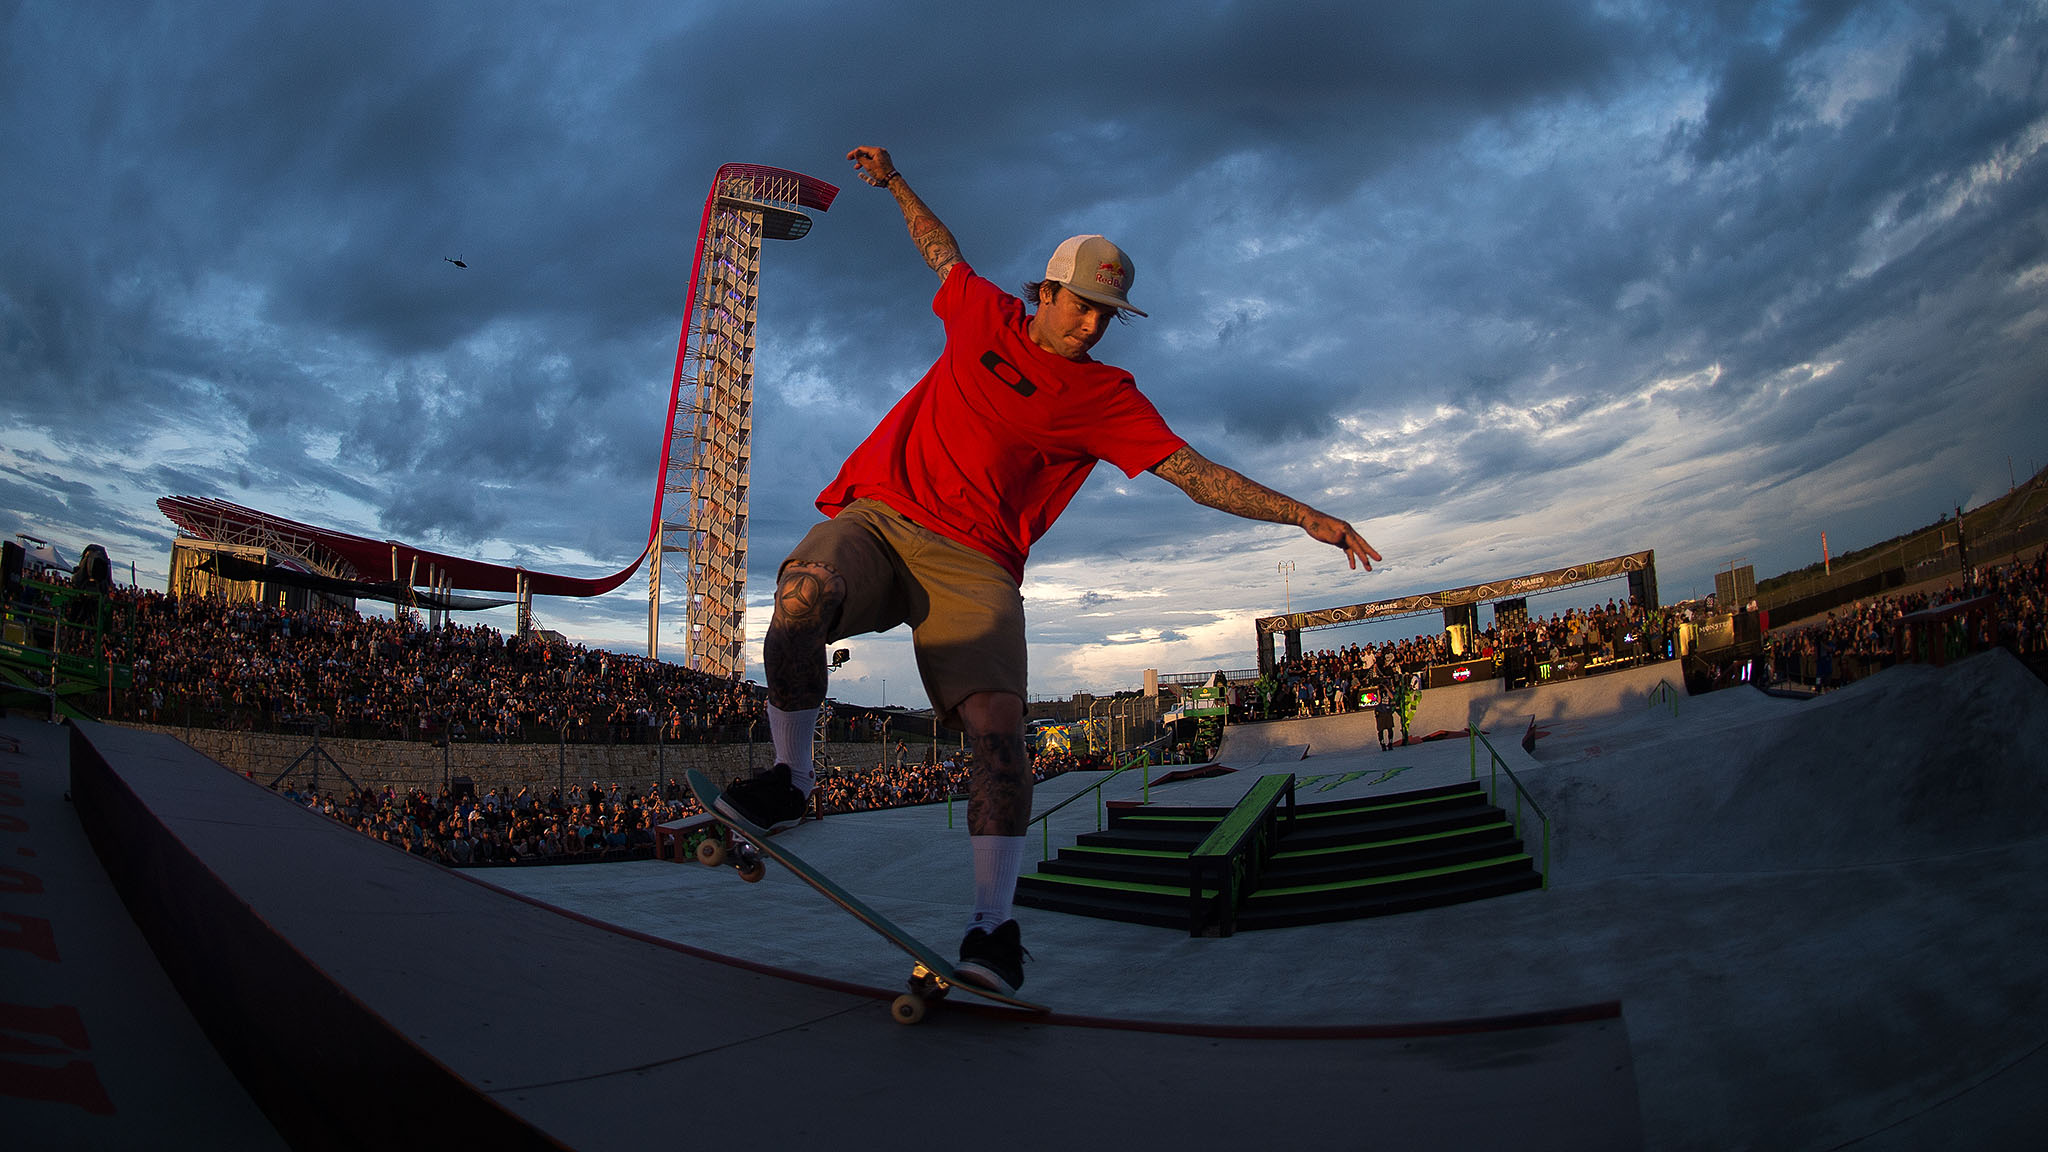 Men's Skateboard Street final ~ Ryan Sheckler